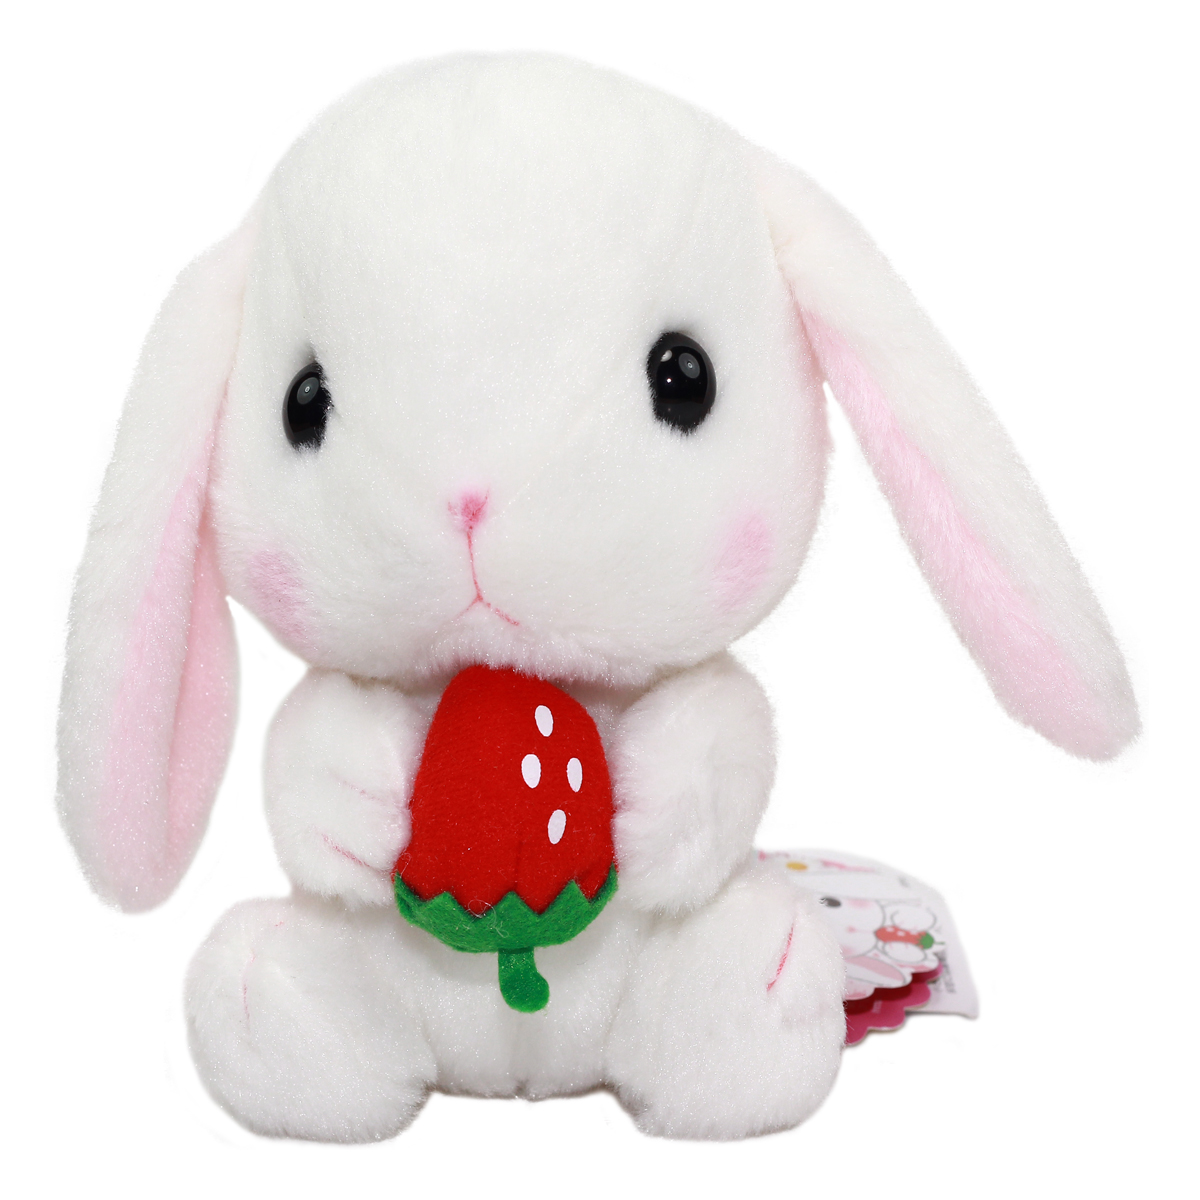 Amuse Bunny Plush Doll Sweet Garden Collection Cute Stuffed Animal Toy White 6 Inches